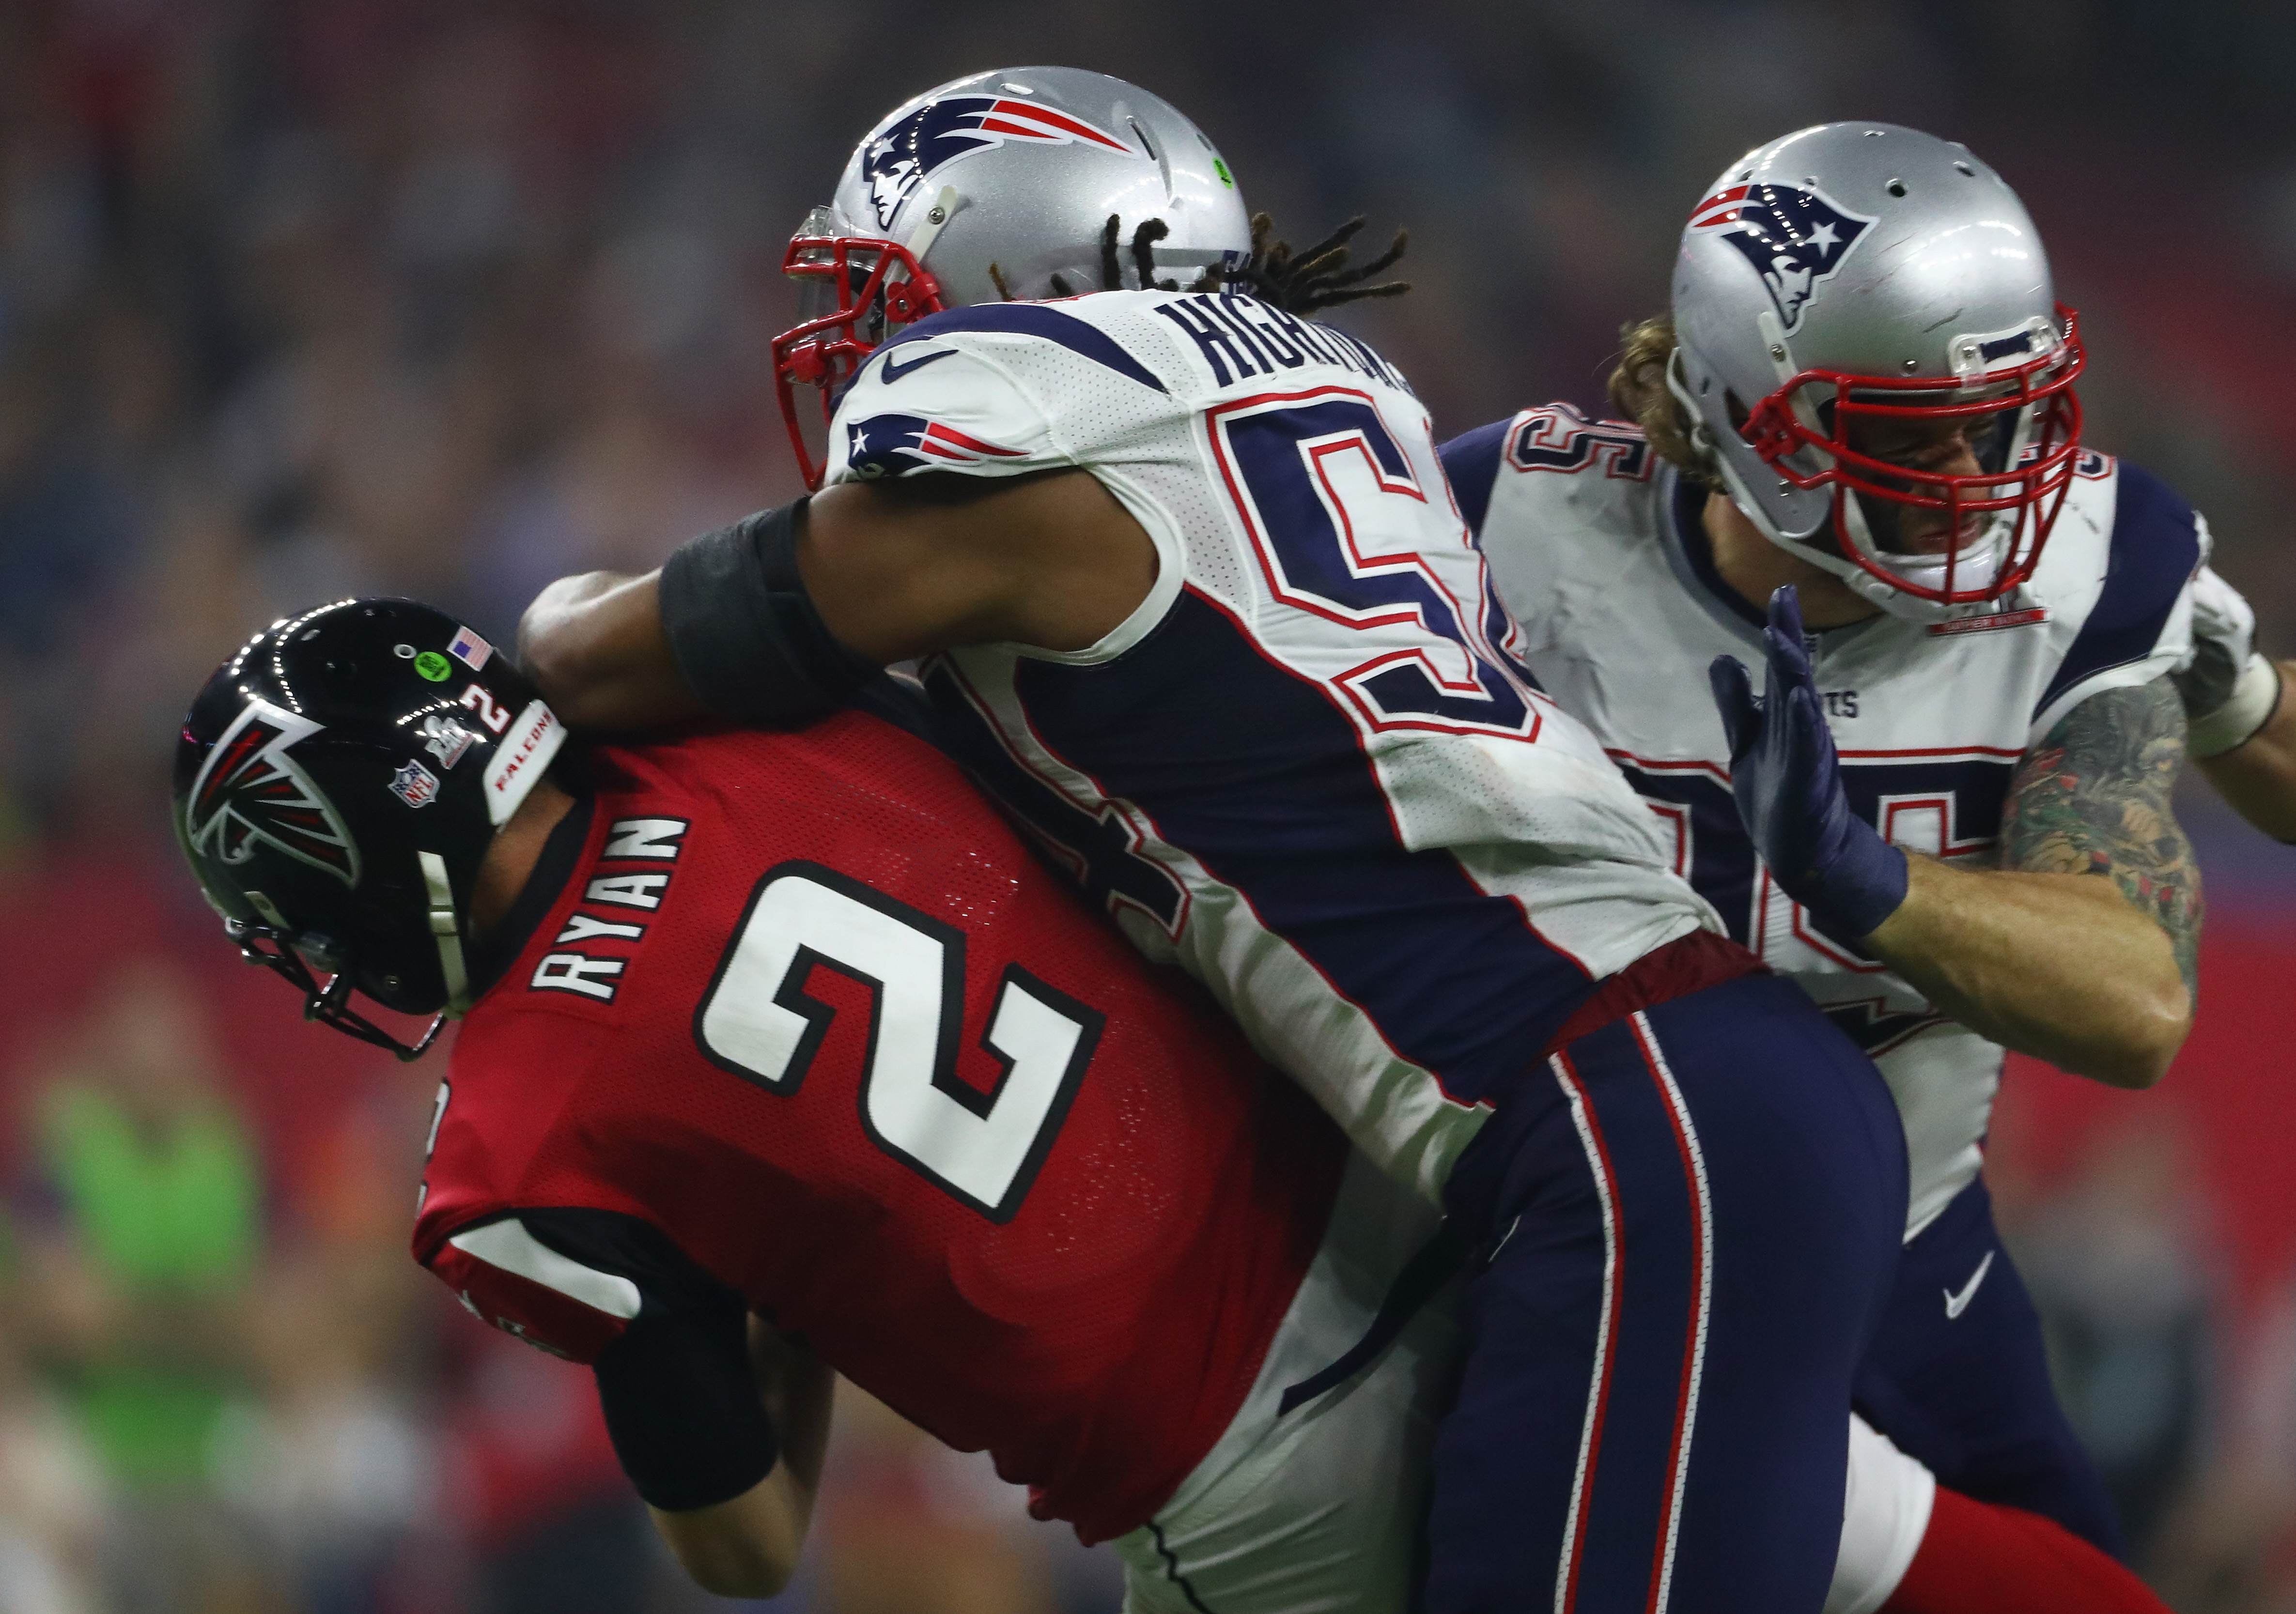 Twitter suffered a blind side hit when it lost its NFL streaming rights deal to Amazon.